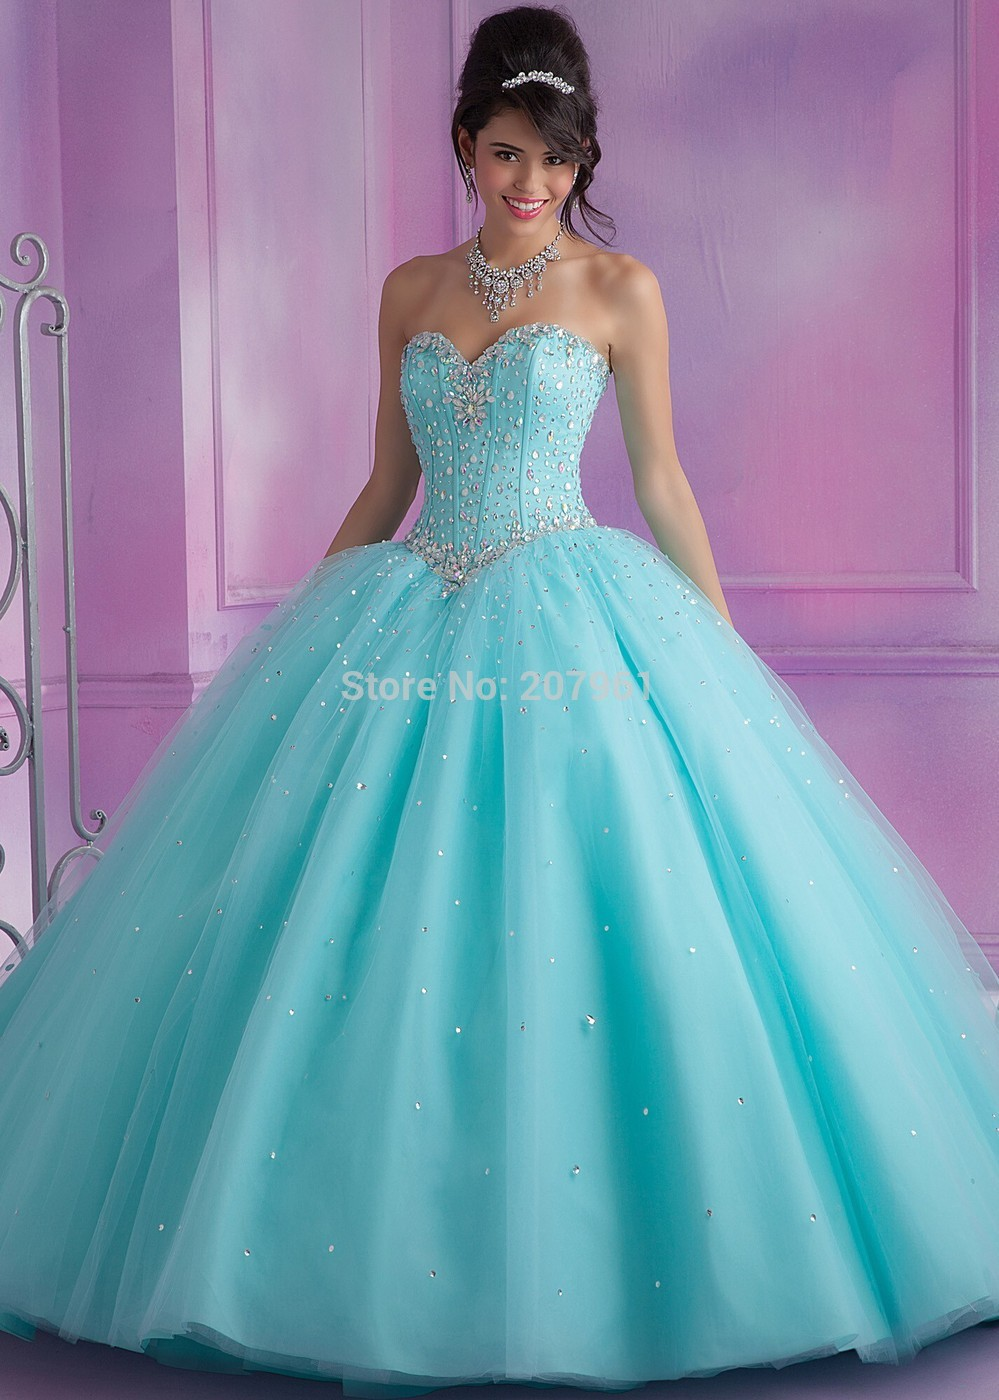 3893156b5ed Sweet 15 dress Mint   Pink Ball Gown Quinceanera dresses 2017 with ...